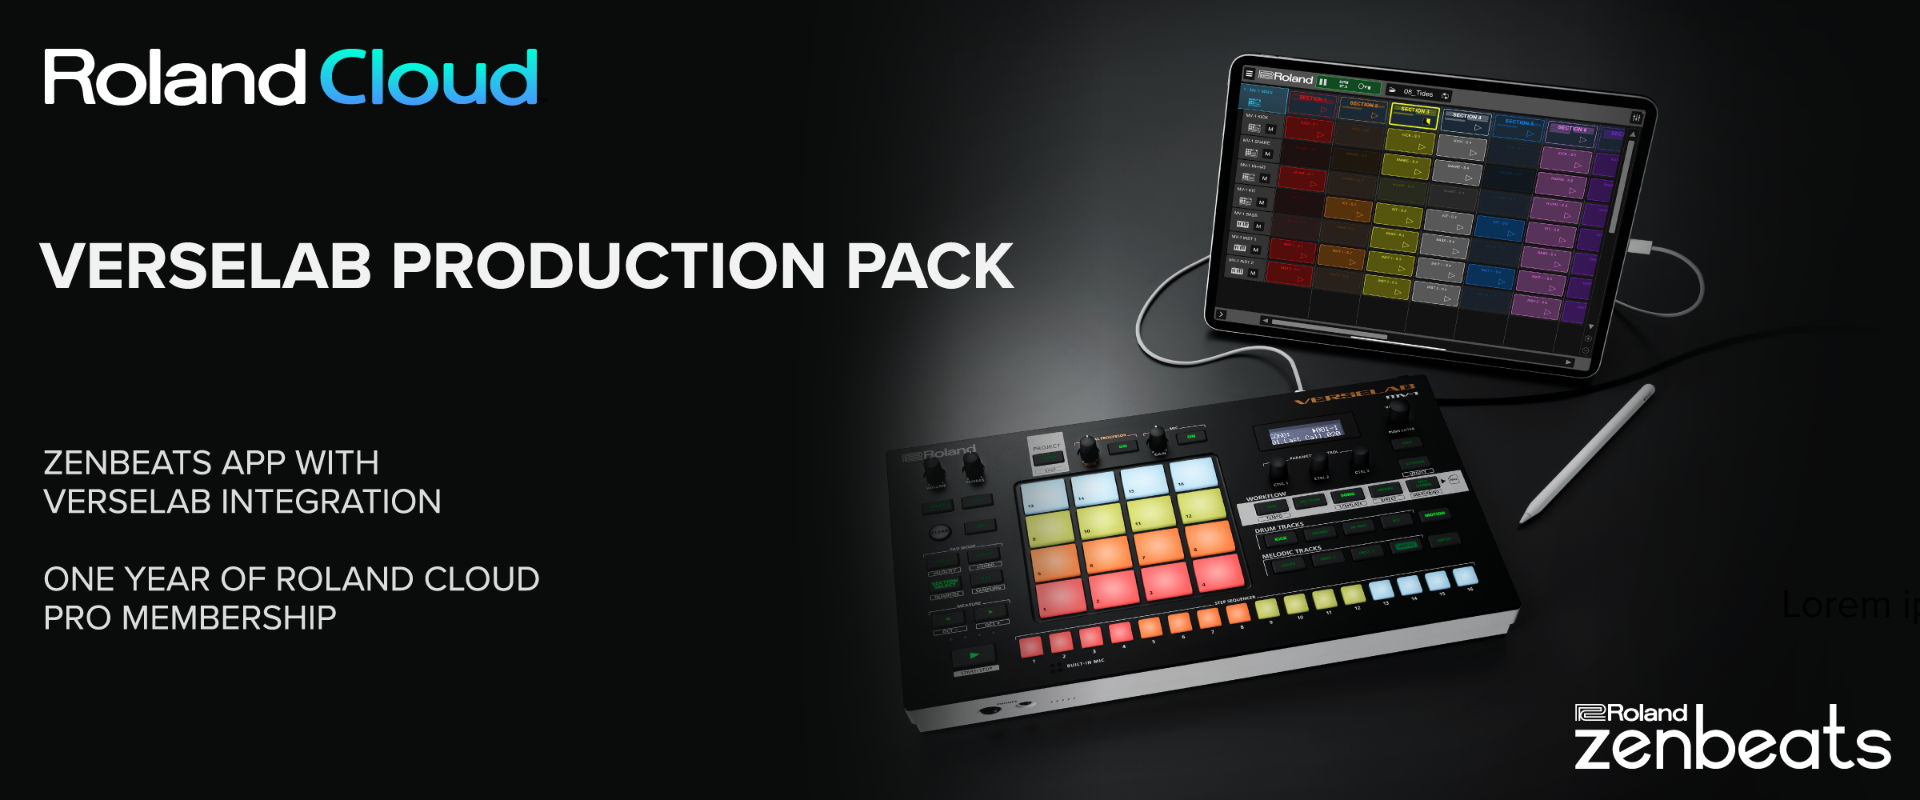 Image of MV-1 and iPad with text: Roland Cloud Verselab Prodution Pack. Zenbeats app with Verselab integration. One year of Roland Cloud Pro Membership